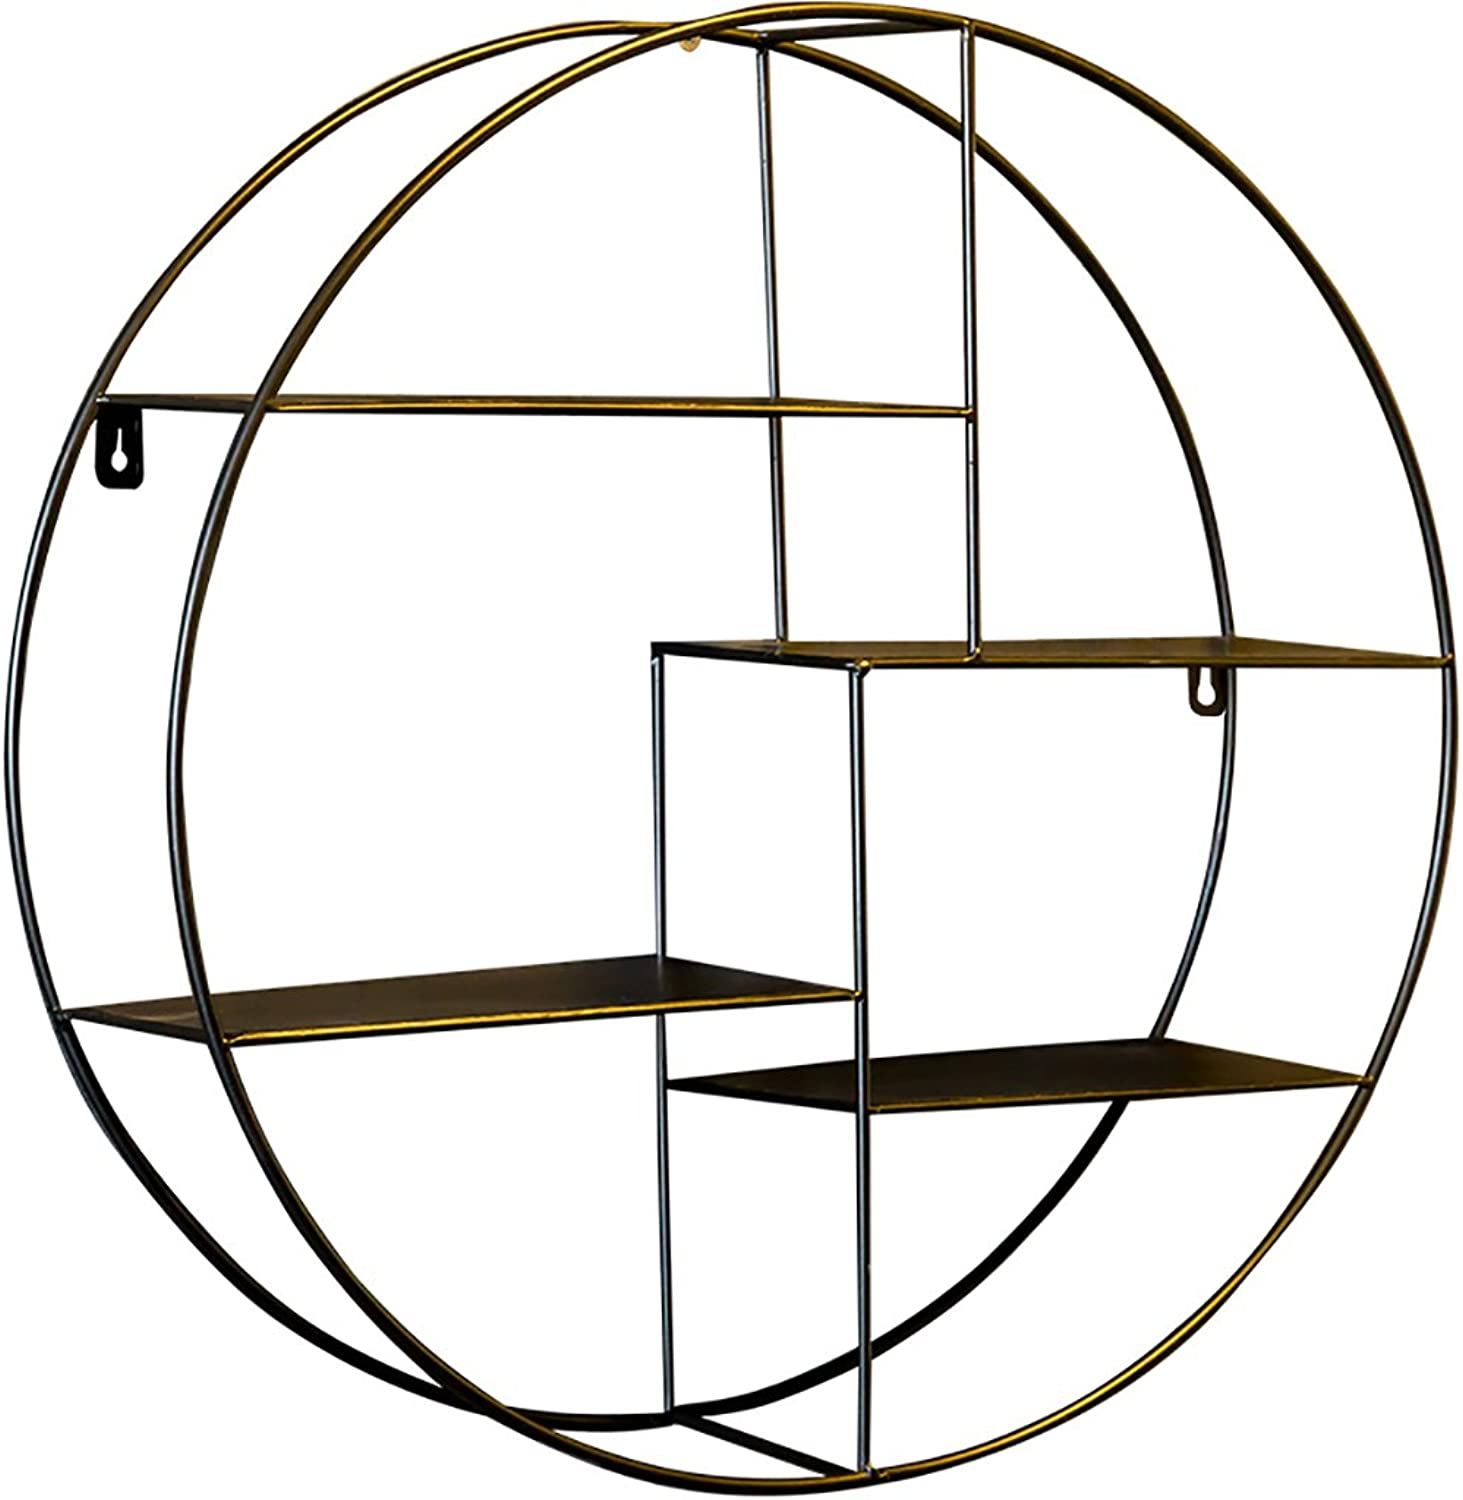 SYF Shelf Living Room Dining Room Wall Shelf Wall Iron Partition Wall Round Frame Wrought Iron Decorative Wall Hanging 50x50cm A+